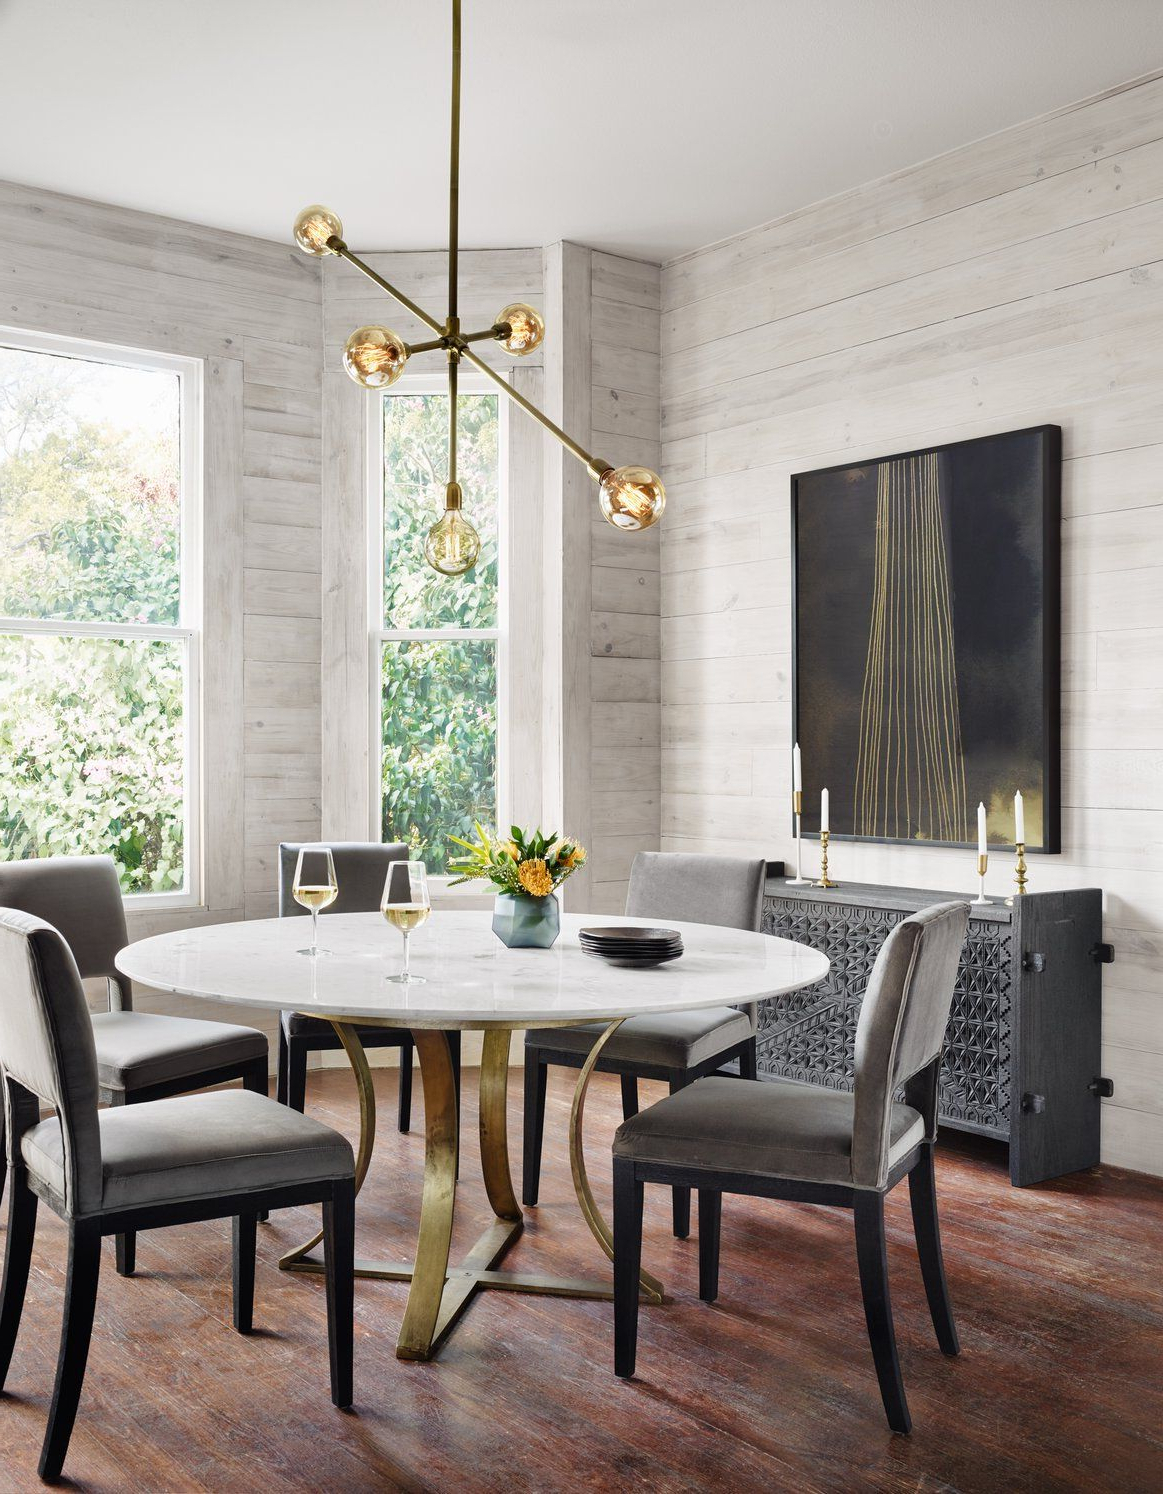 2019 Dining Tables With White Marble Top in Four Hands Gage Dining Table Room Brass Metal Base Marble